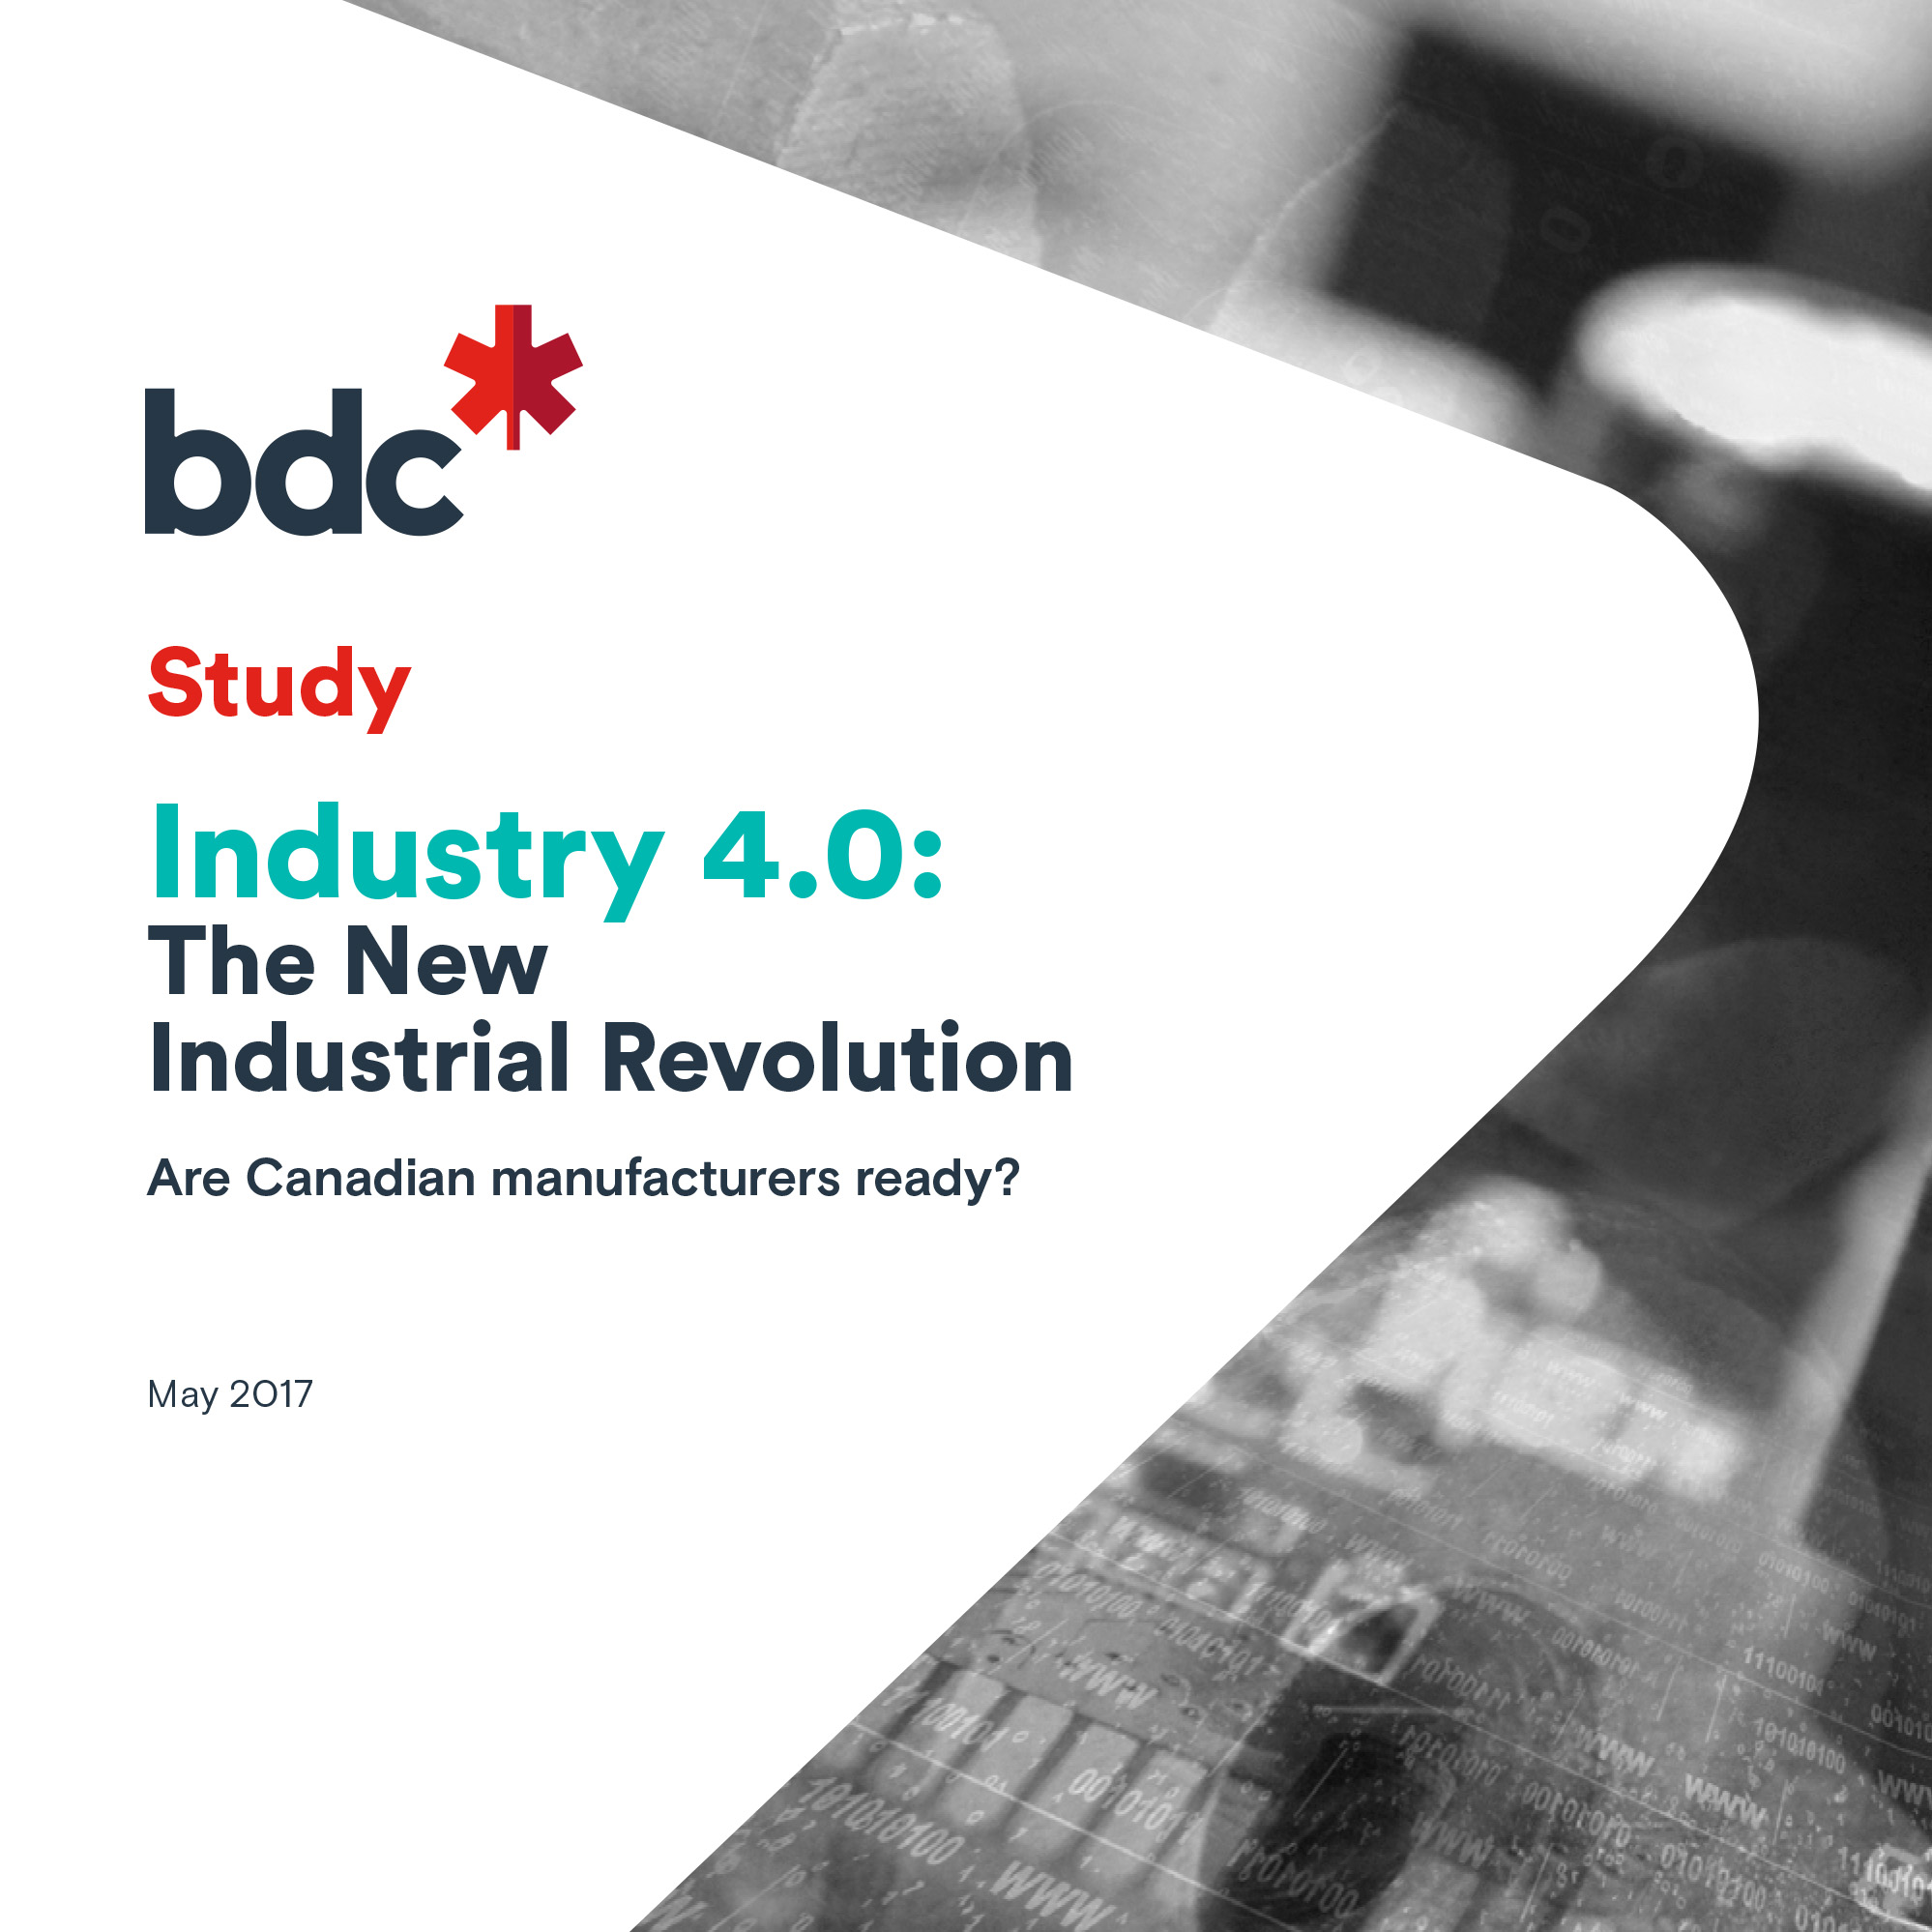 <h1>Superior Cabinets Featured in the BDC Study - Industry 4.0: The New Industrial Revolution</h1>